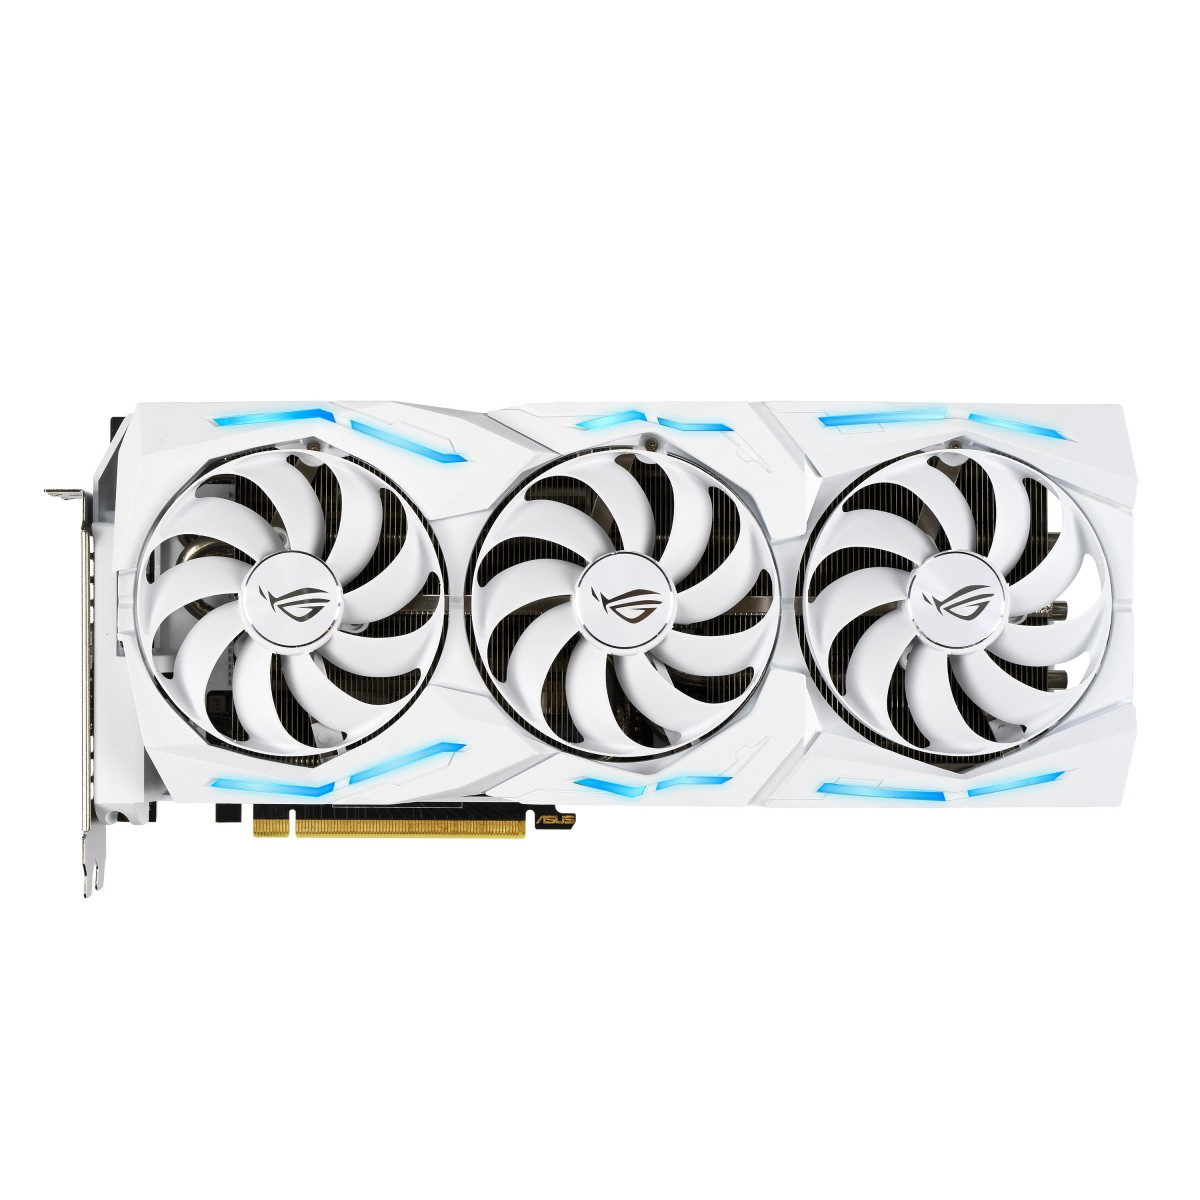 asus rtx2080ti rogstrix whiteedition